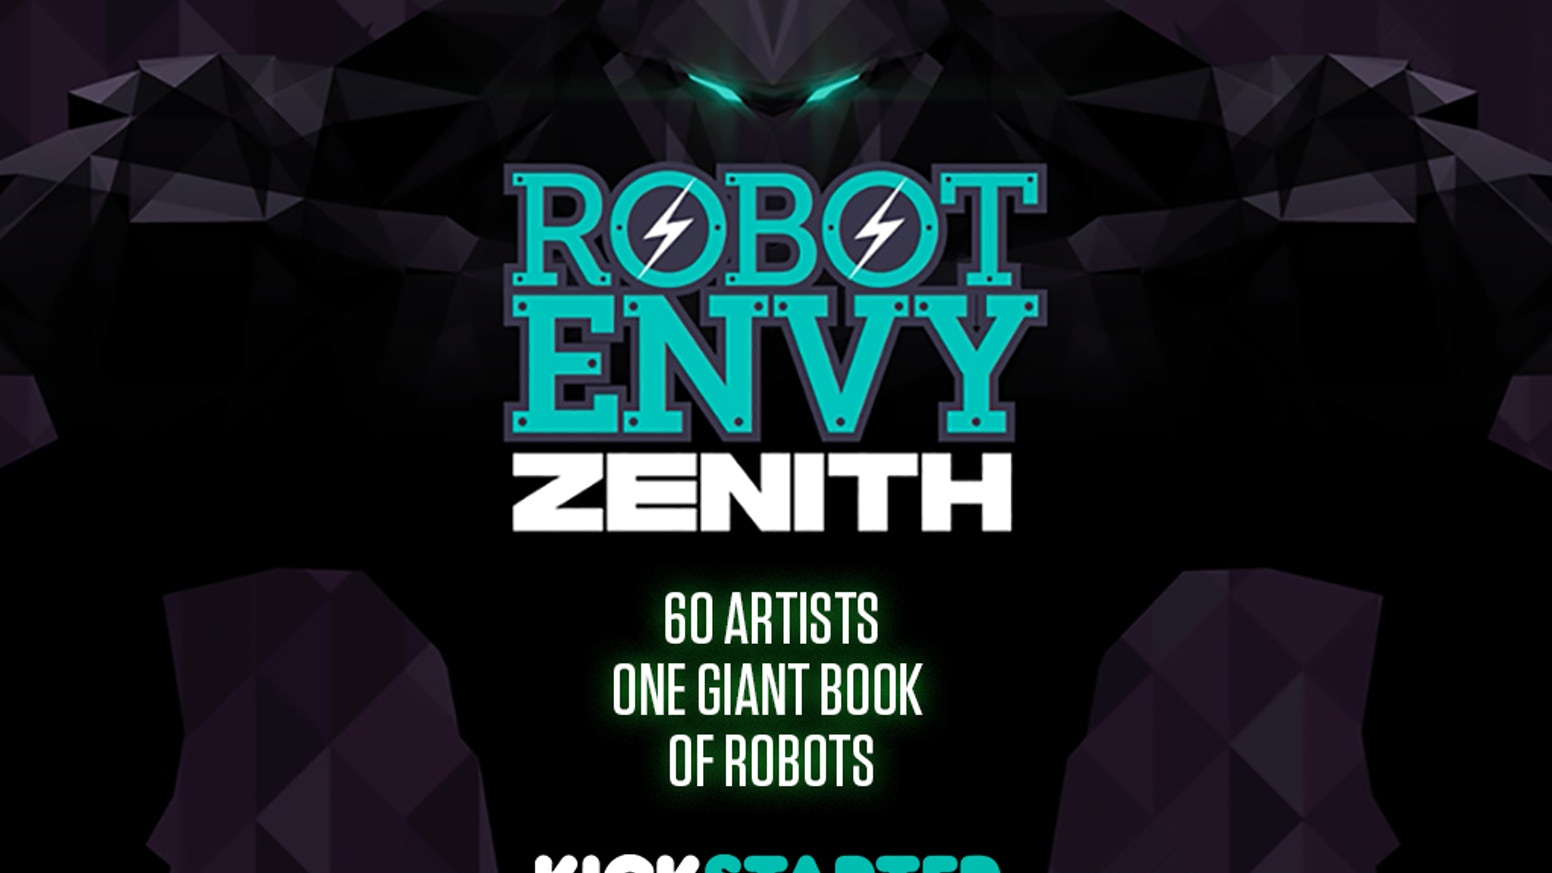 60+ artists. One giant robot book! Order now!